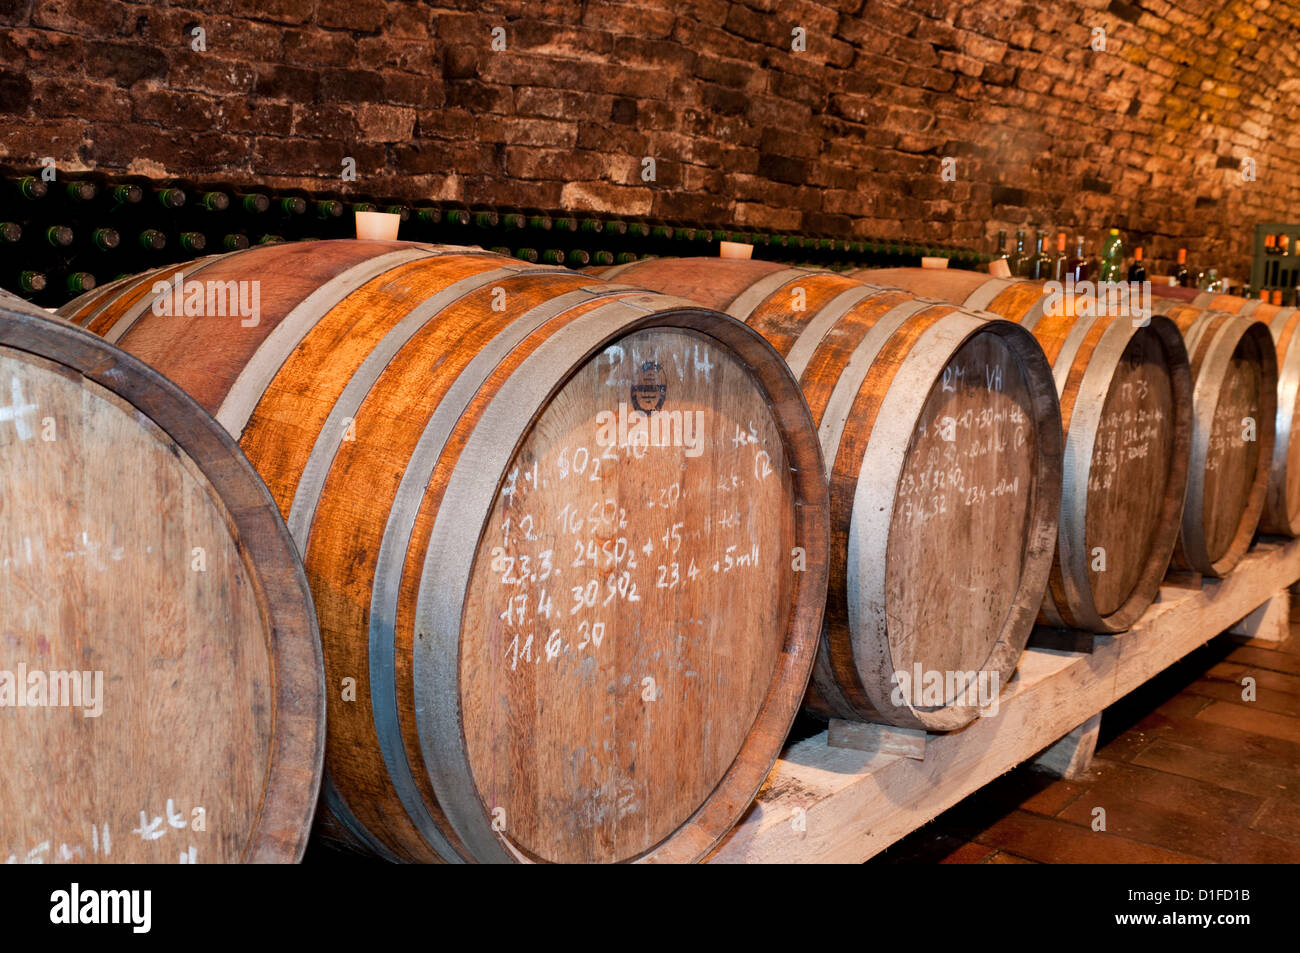 barrels stockfotos barrels bilder alamy. Black Bedroom Furniture Sets. Home Design Ideas